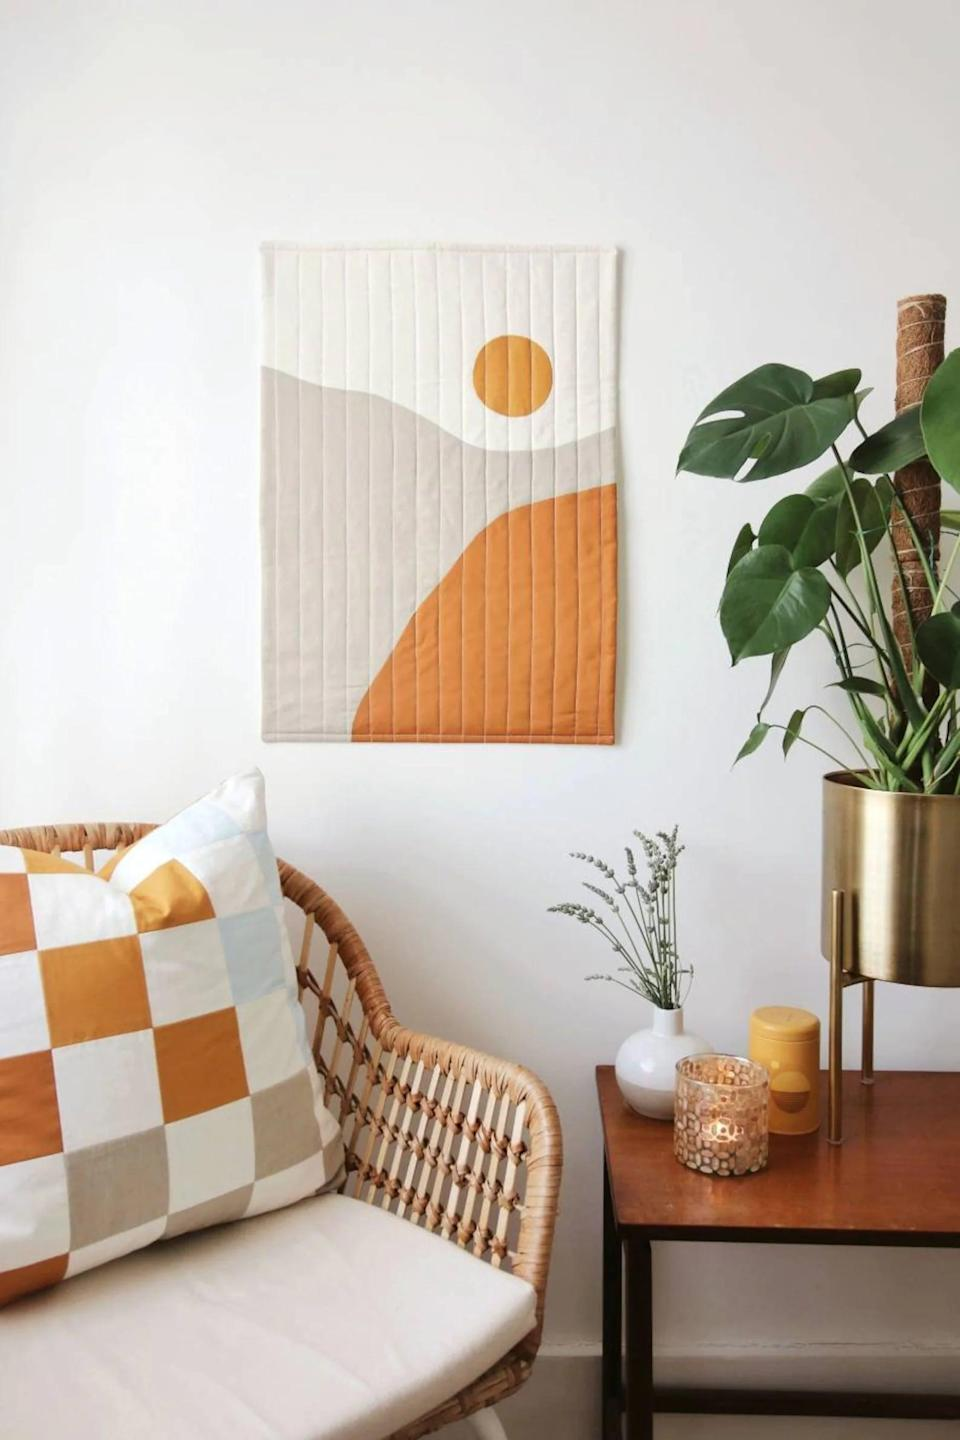 <p>This <span>Sunrise Modern Quilted Wall Decor</span> ($175) will add texture and color to your living room wall. It's an eye-catching piece that will have guests wondering where it's from.</p>